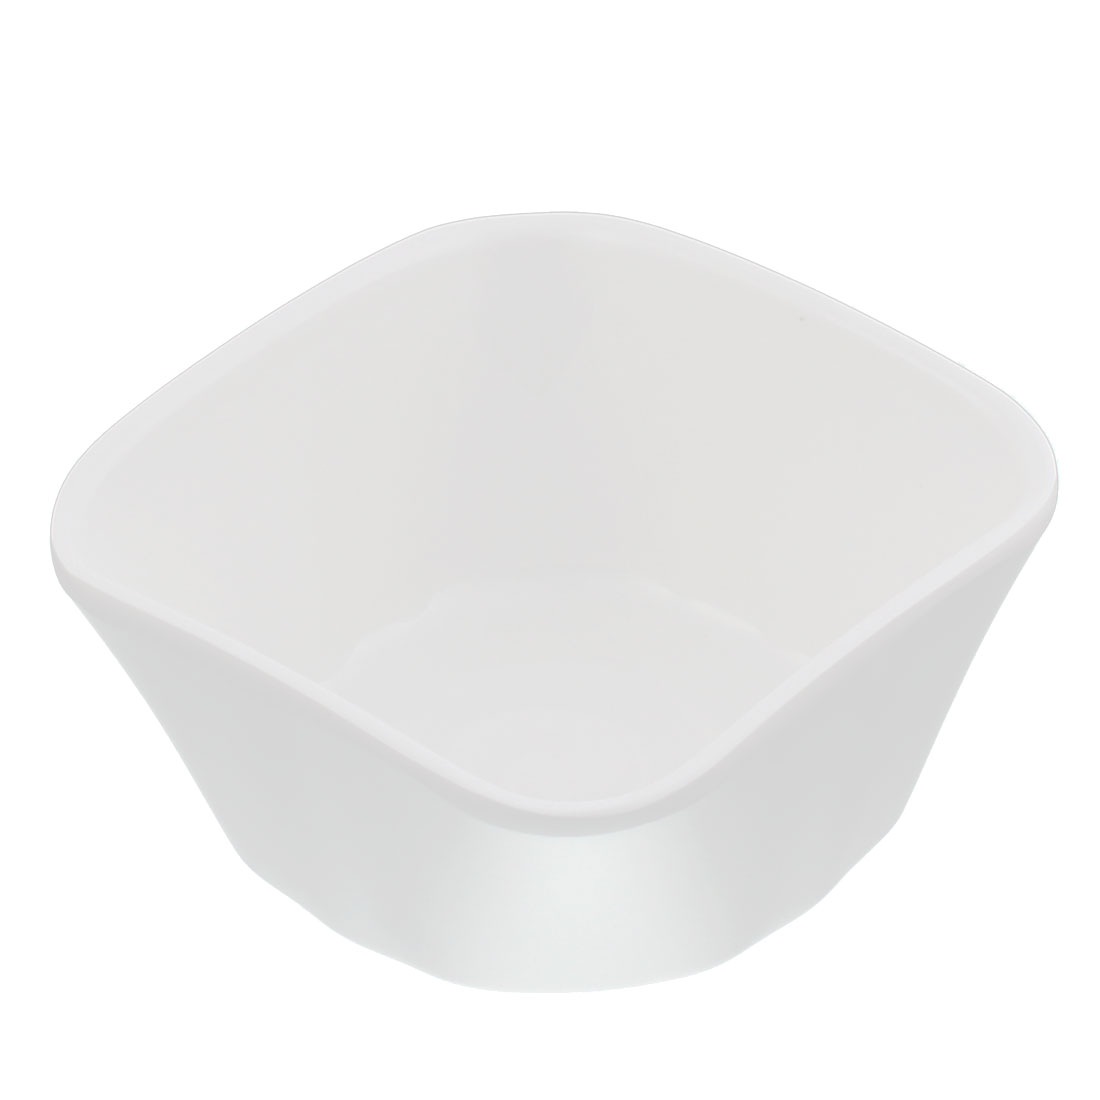 Kitchen Banquet Square Bowl Plate Dish 87 x 87mm